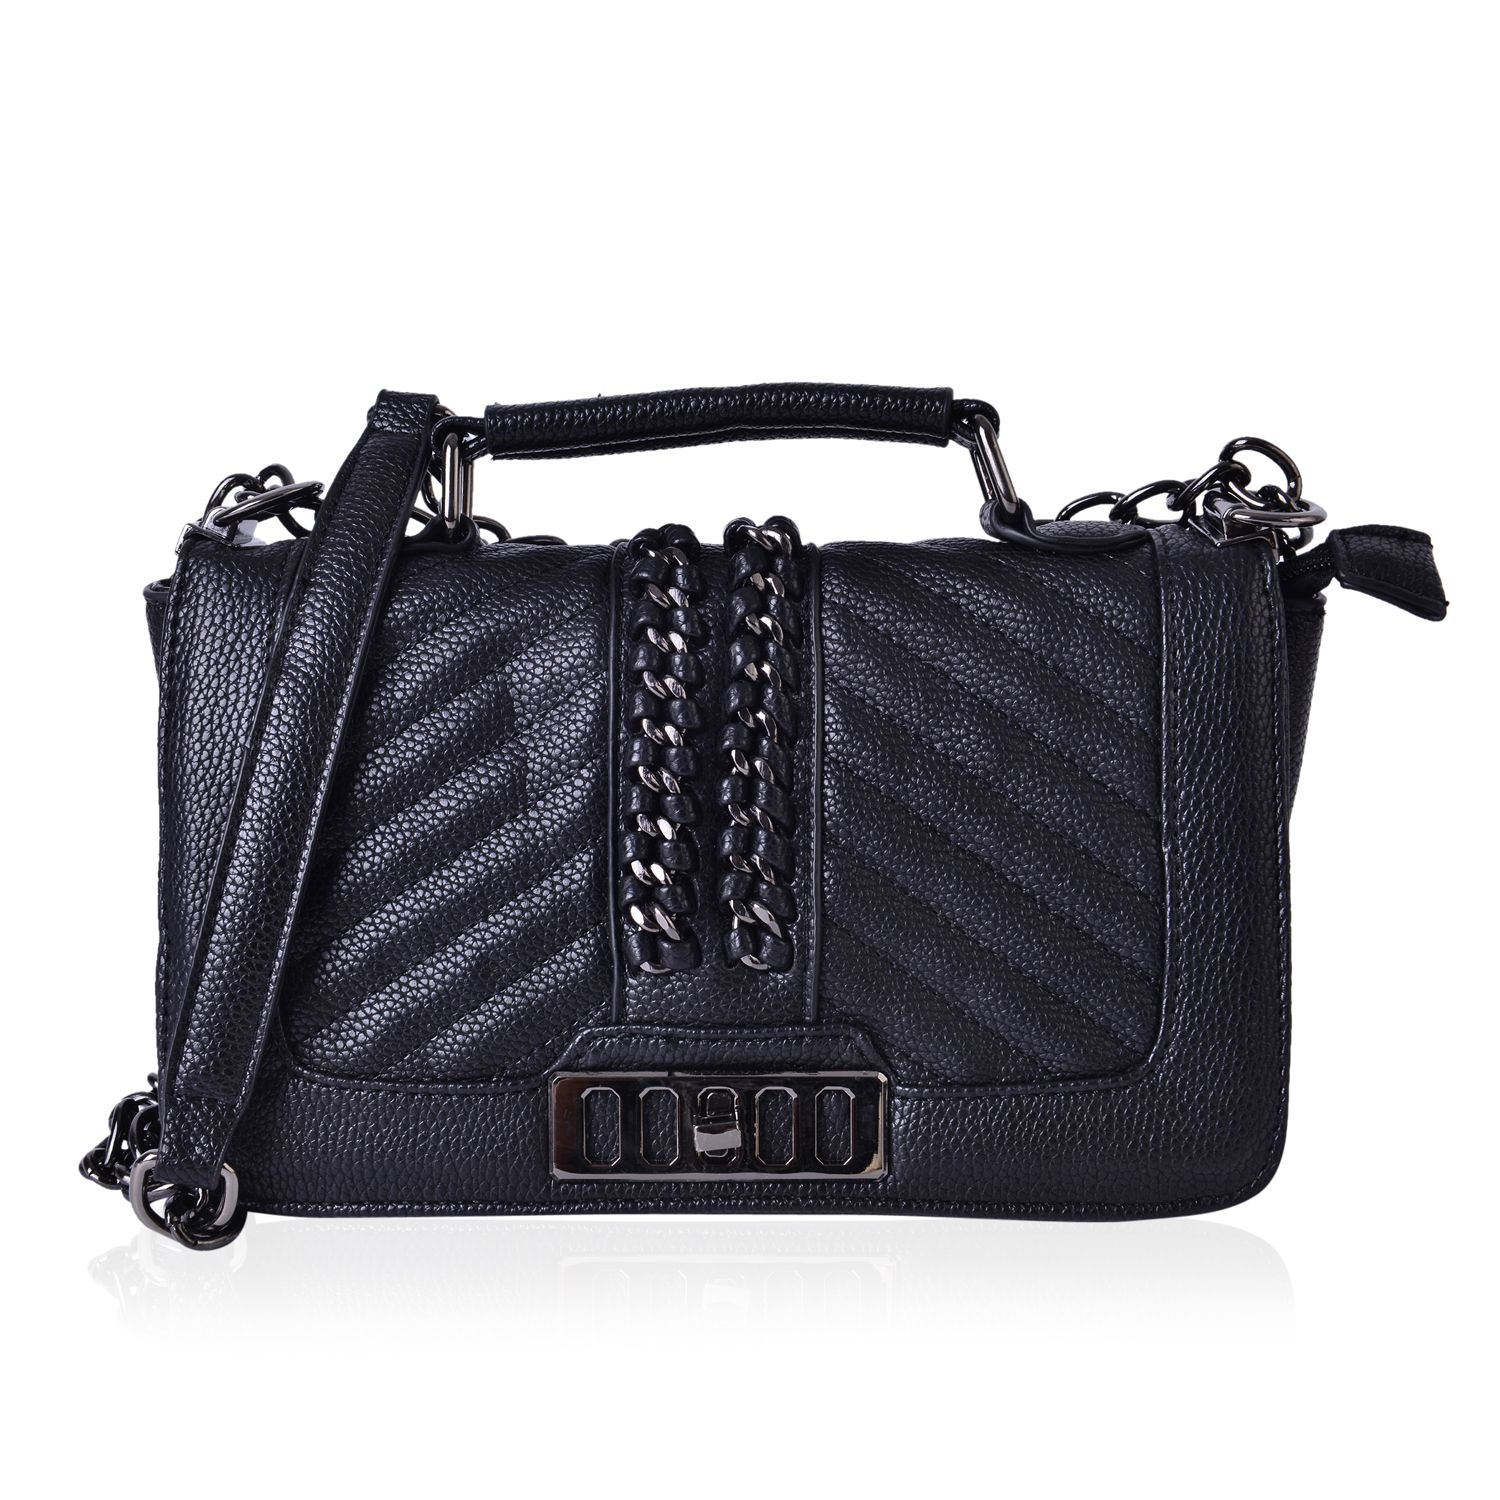 fe040c5542 Black Quilted Faux Leather Flap Over Crossbody Bag with Chain Strap  (9.5x3x6 in)